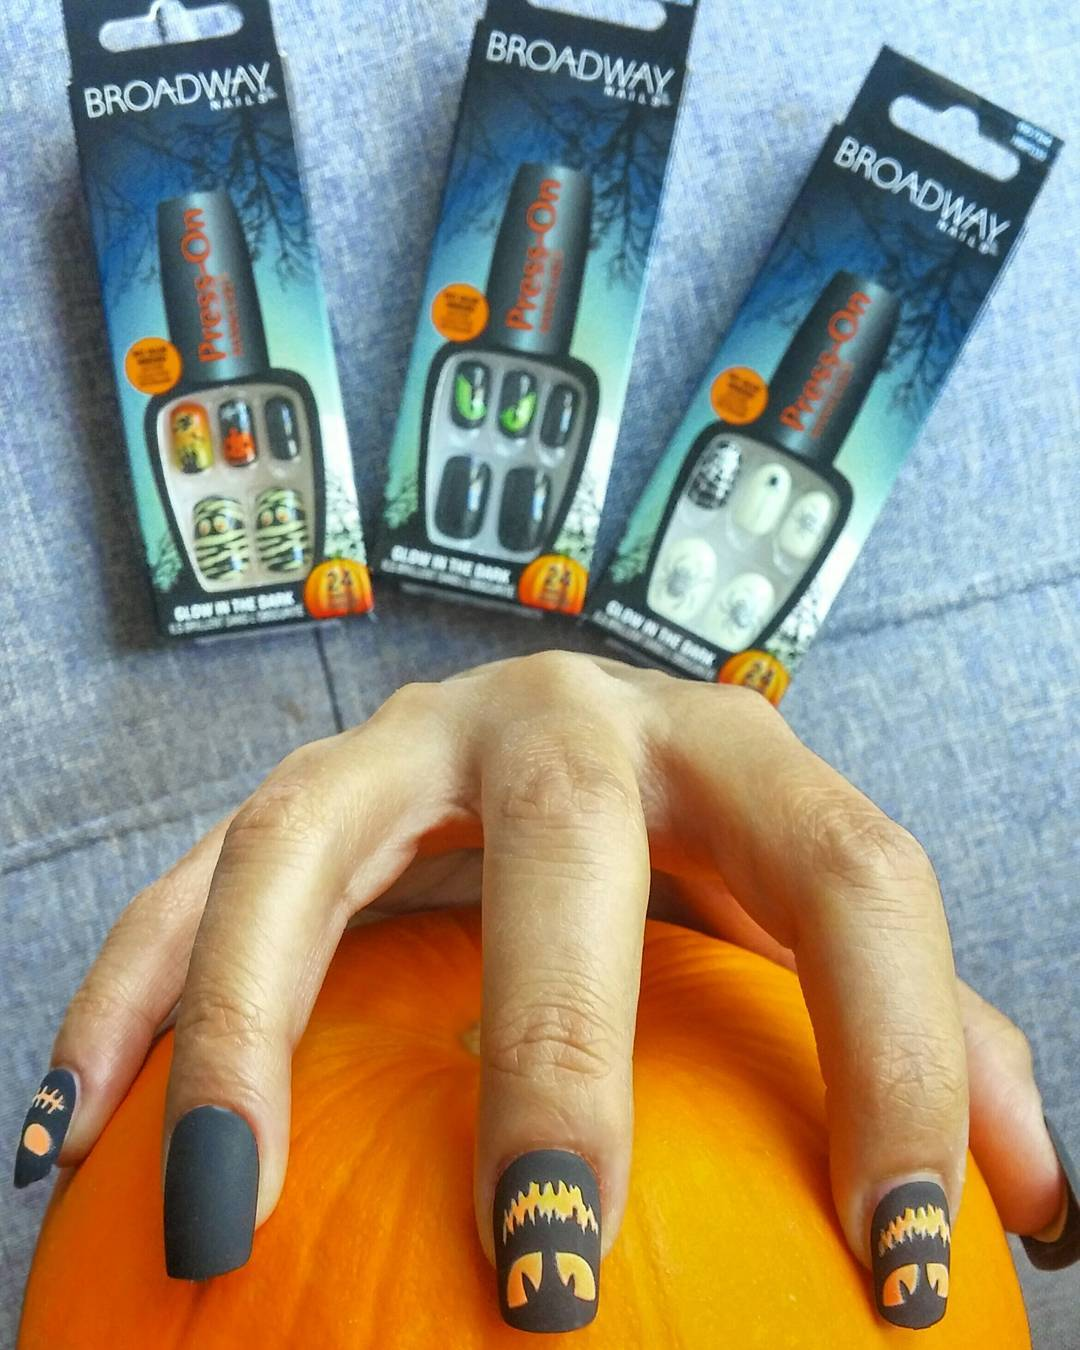 Halloween mani in under 30 seconds & no dry time thx to @kissproducts Broadway nails press-on manicure! Limited edition 🎃 designs are ideal to top off your costume for tonight!